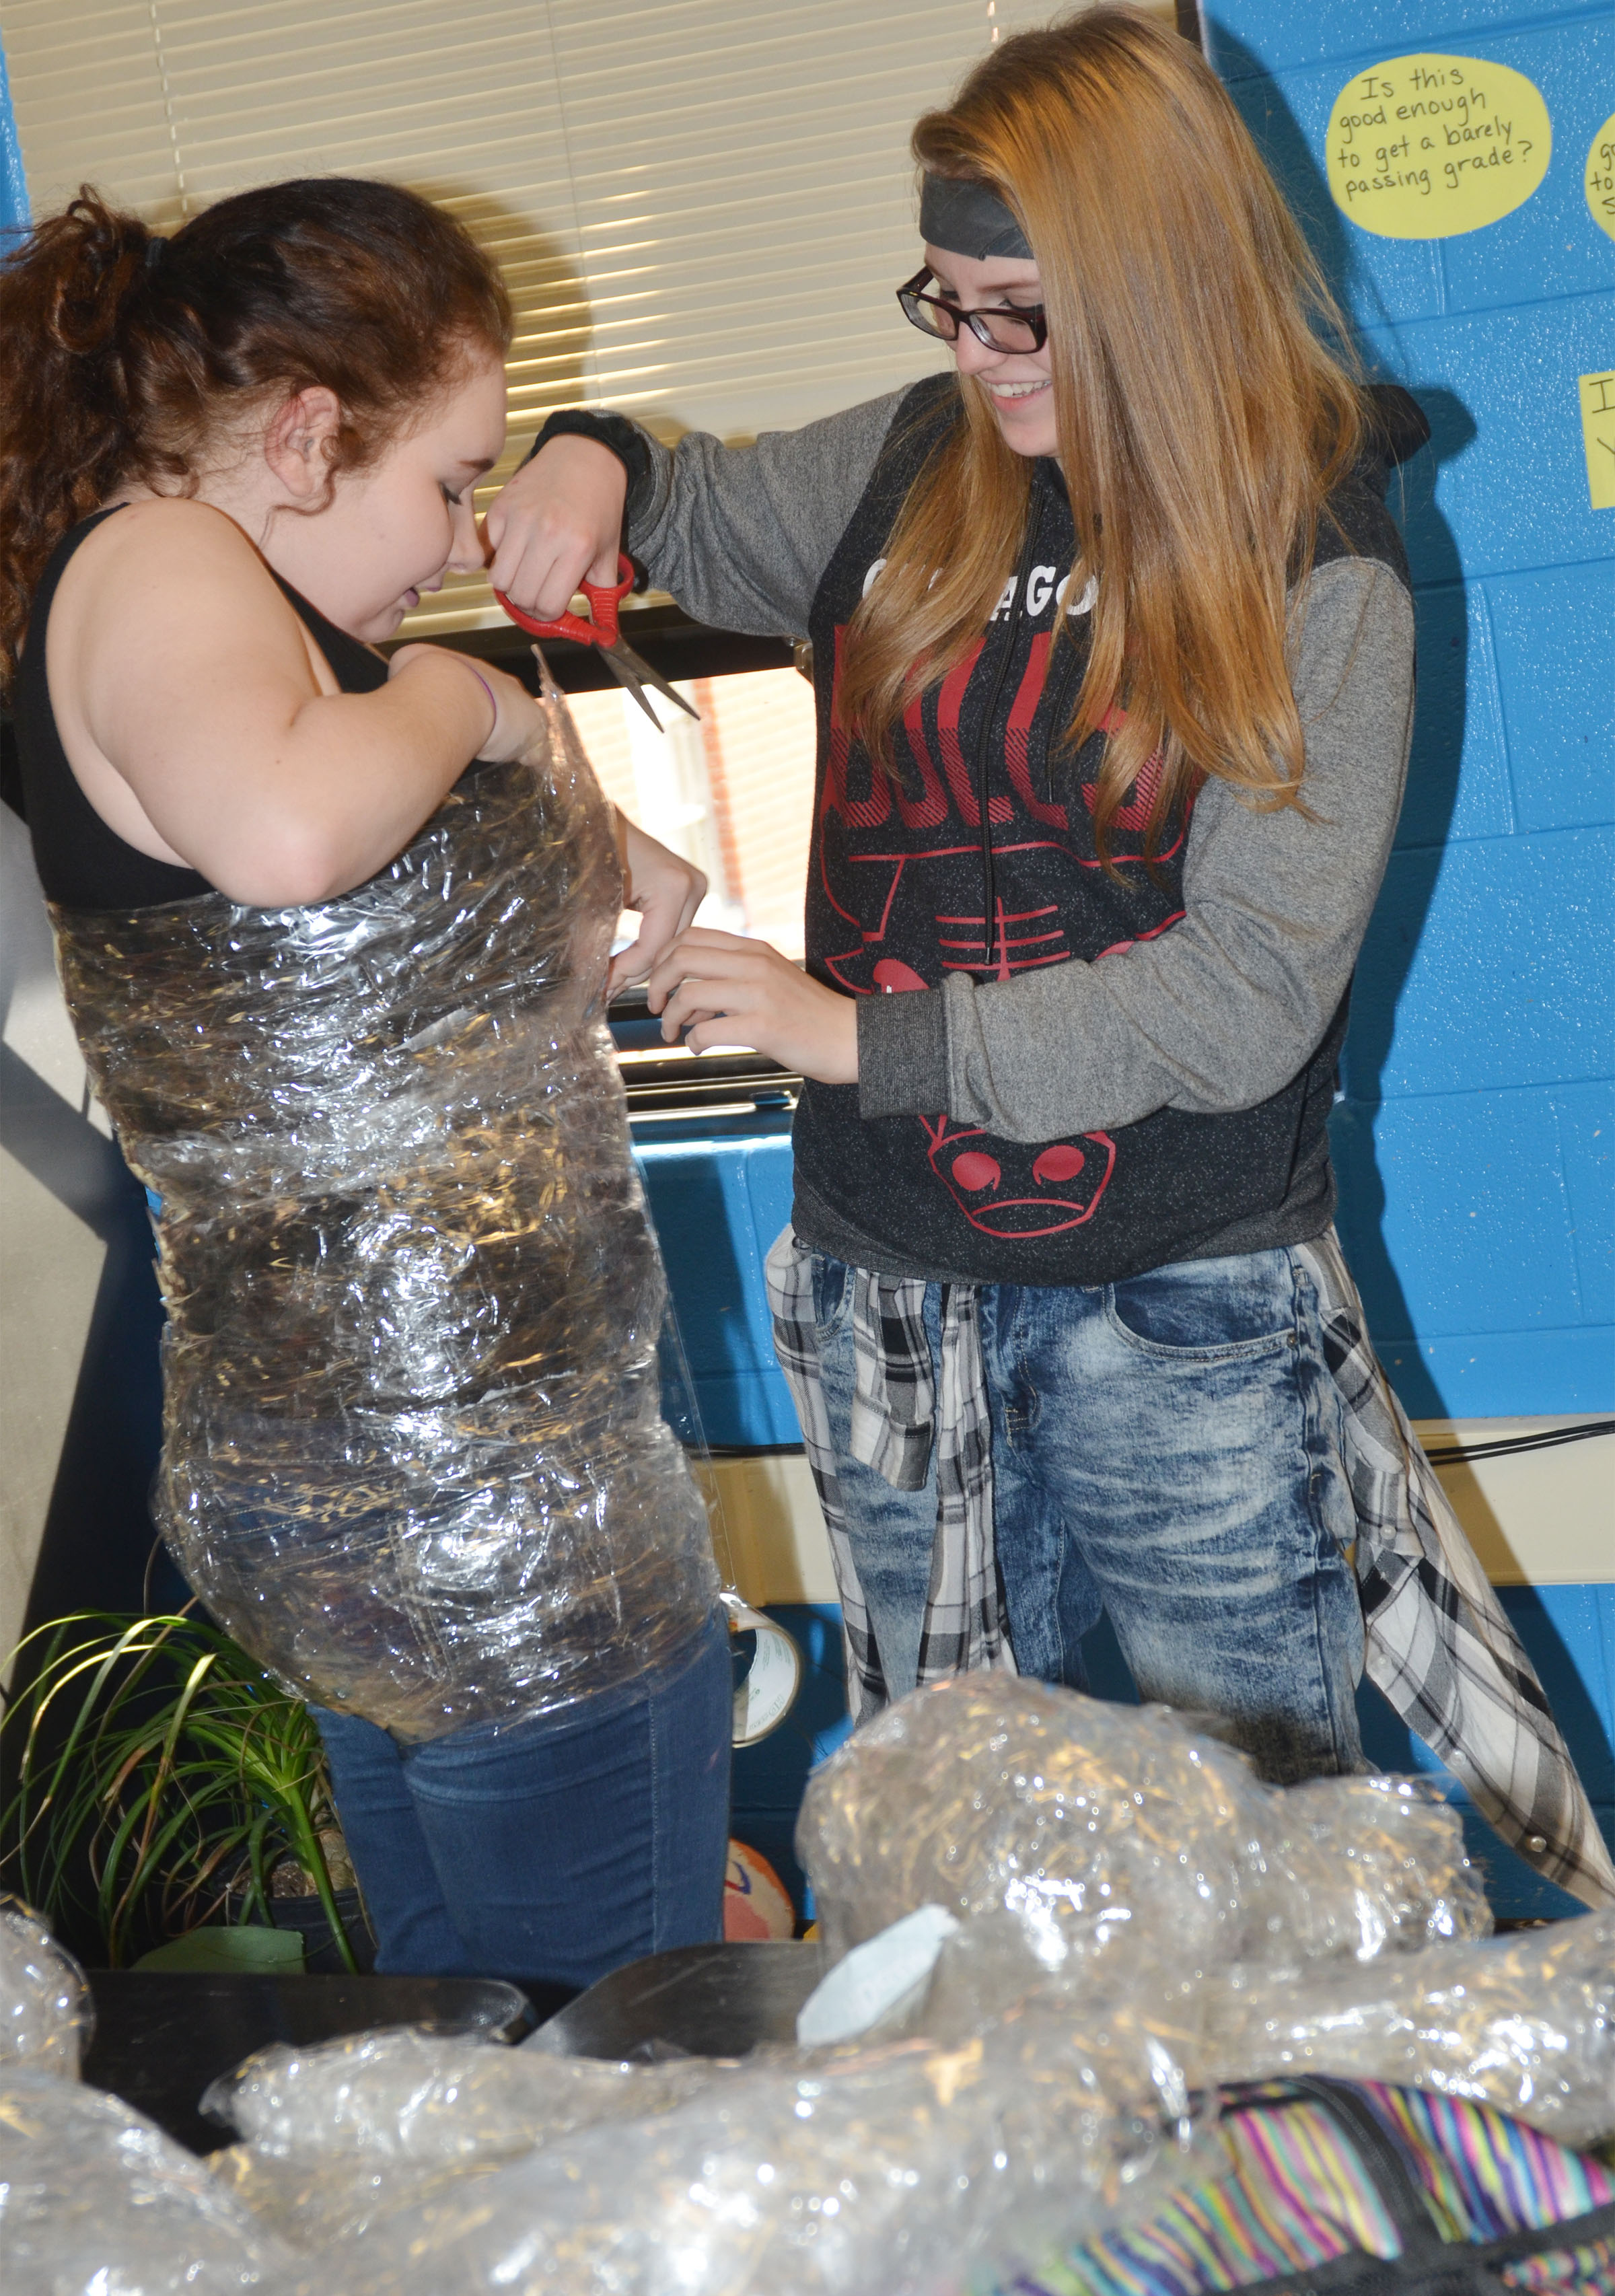 CHS sophomore Jade Packard cuts classmate Leslie McKenzie out after she was taped.